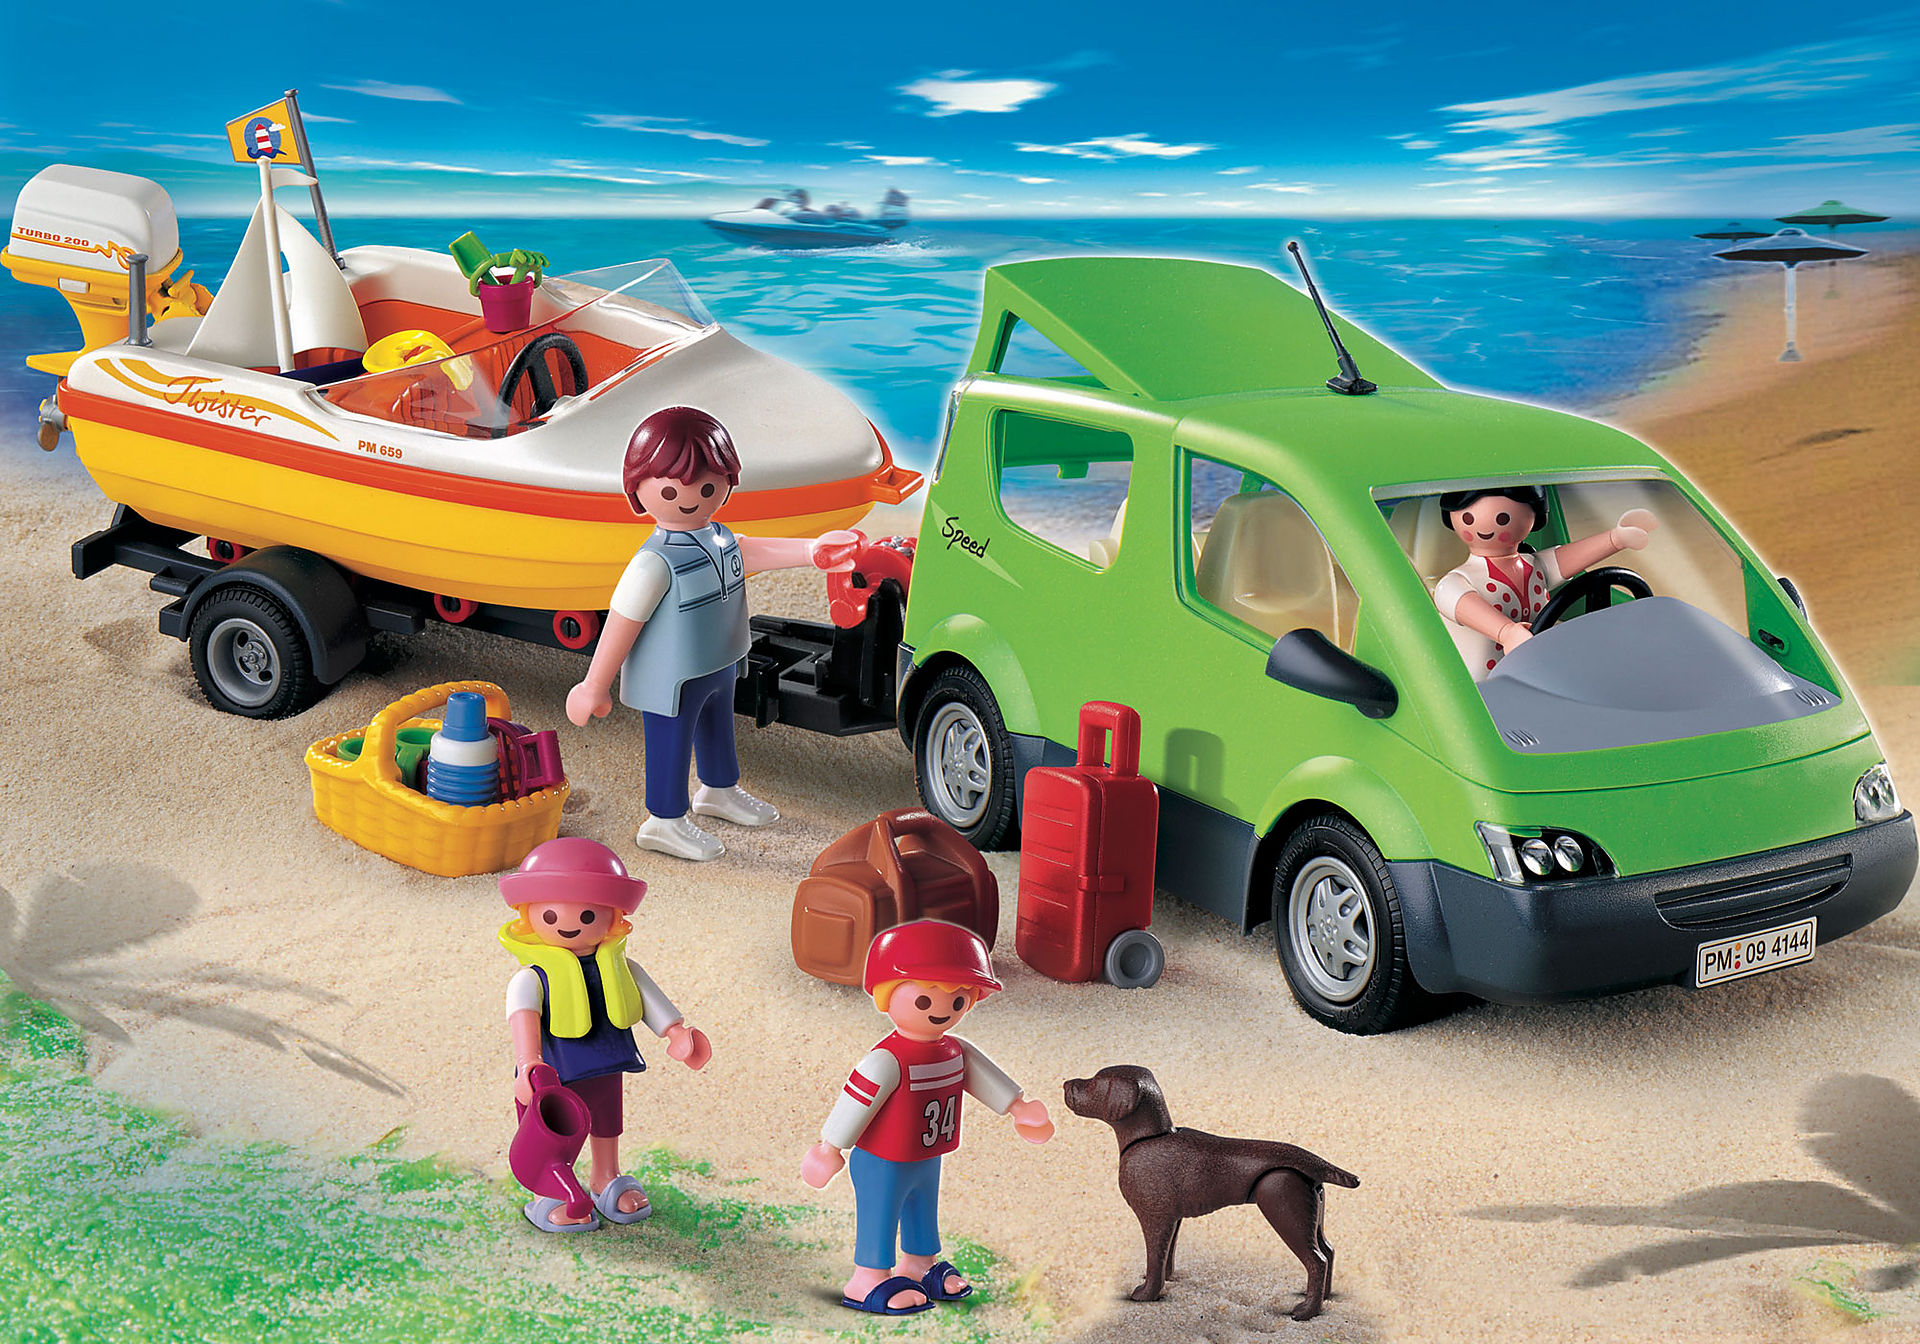 http://media.playmobil.com/i/playmobil/4144_product_detail/Carro Familiar com Lancha